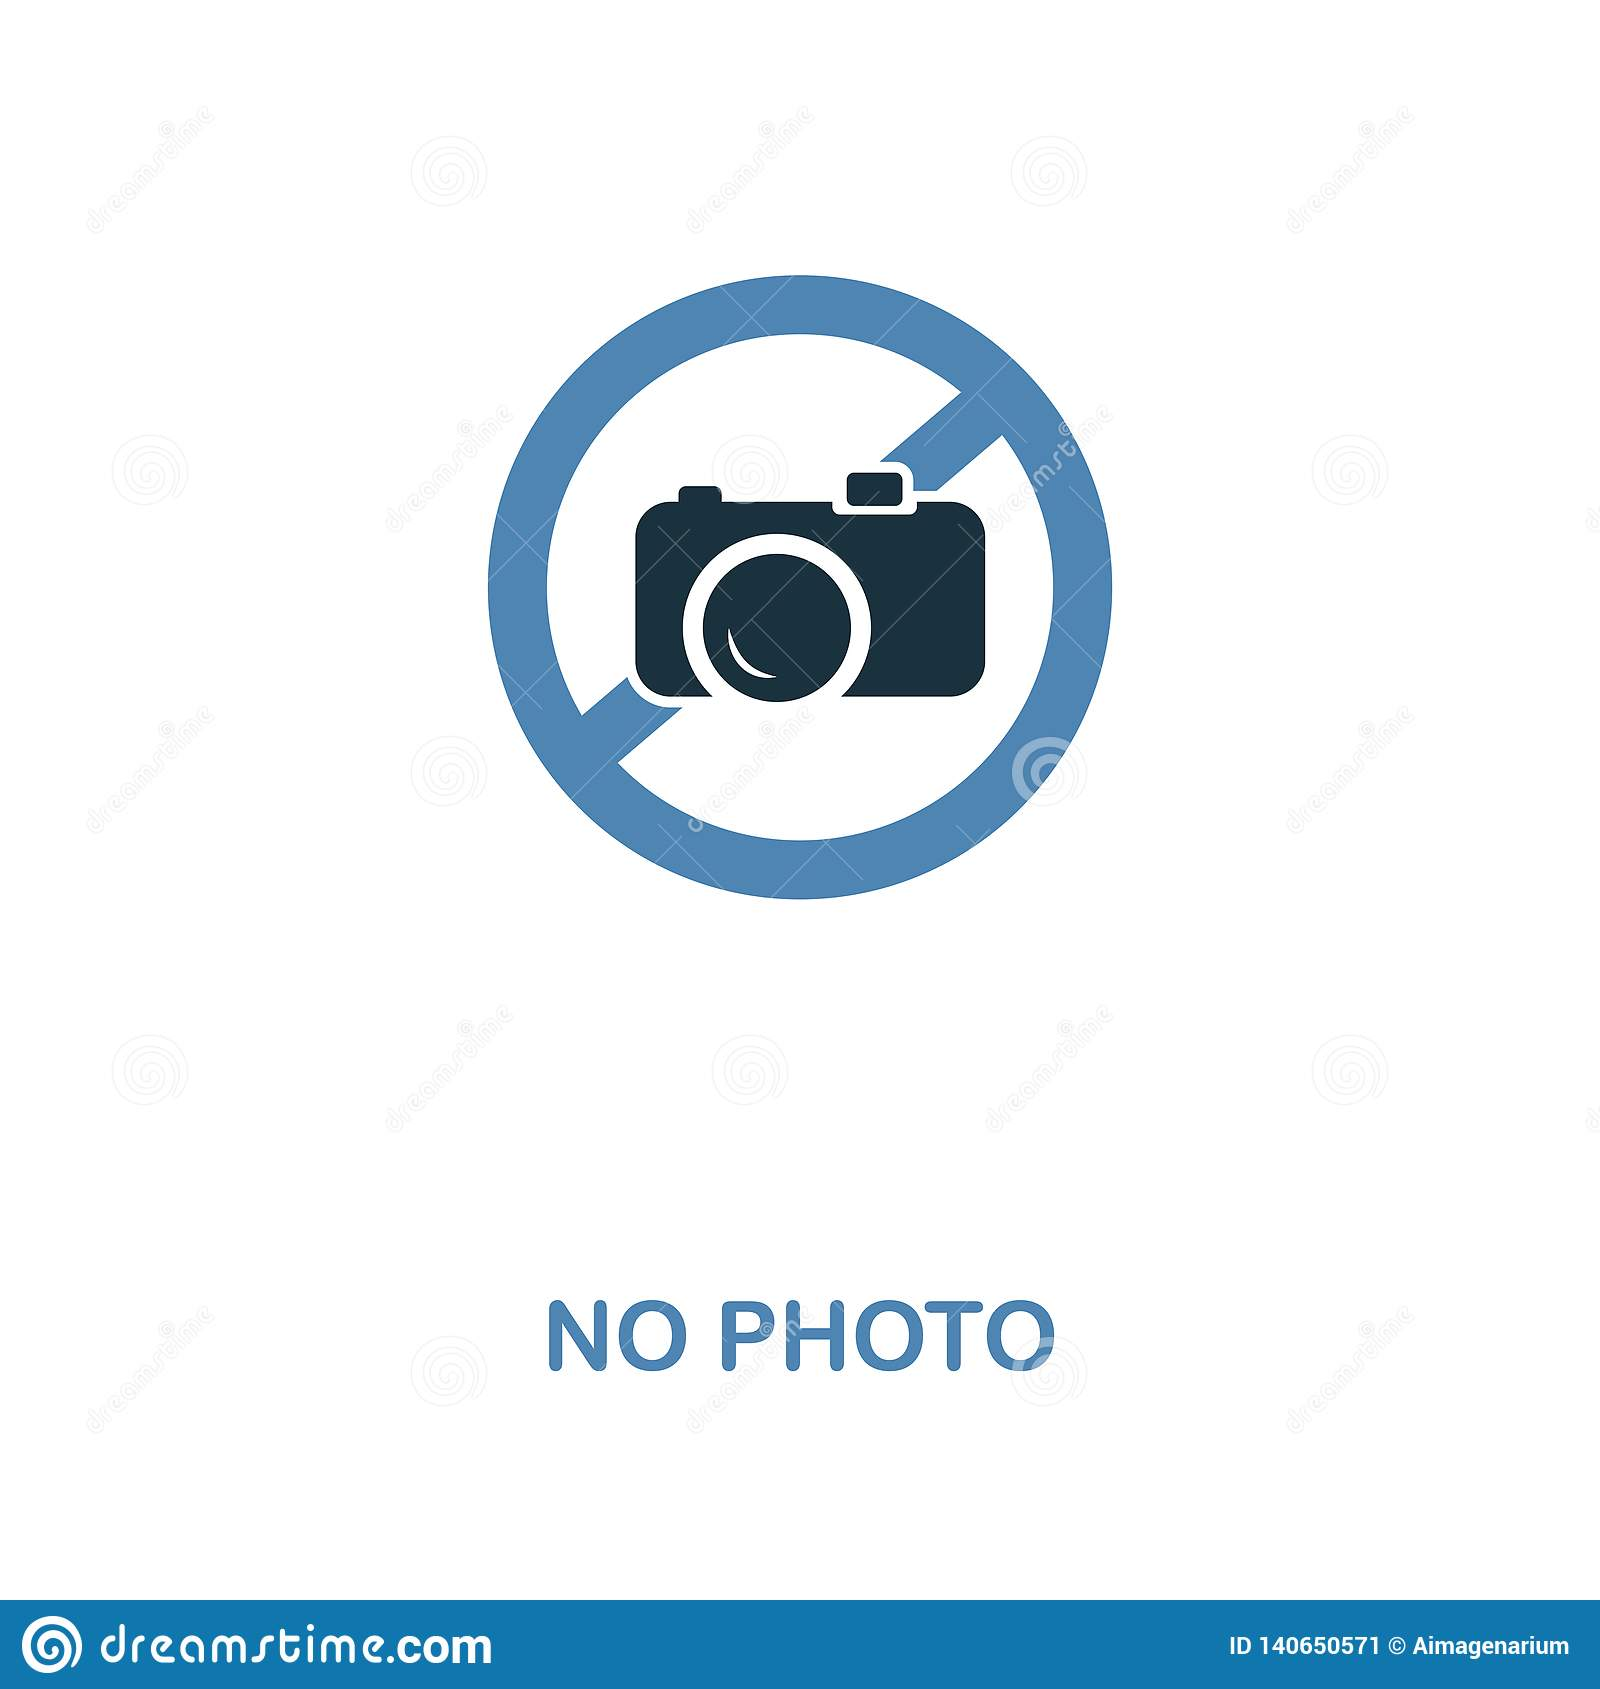 No Photo icon. Monochrome style design from shopping center sign icon collection. UI. Pixel perfect simple pictogram no